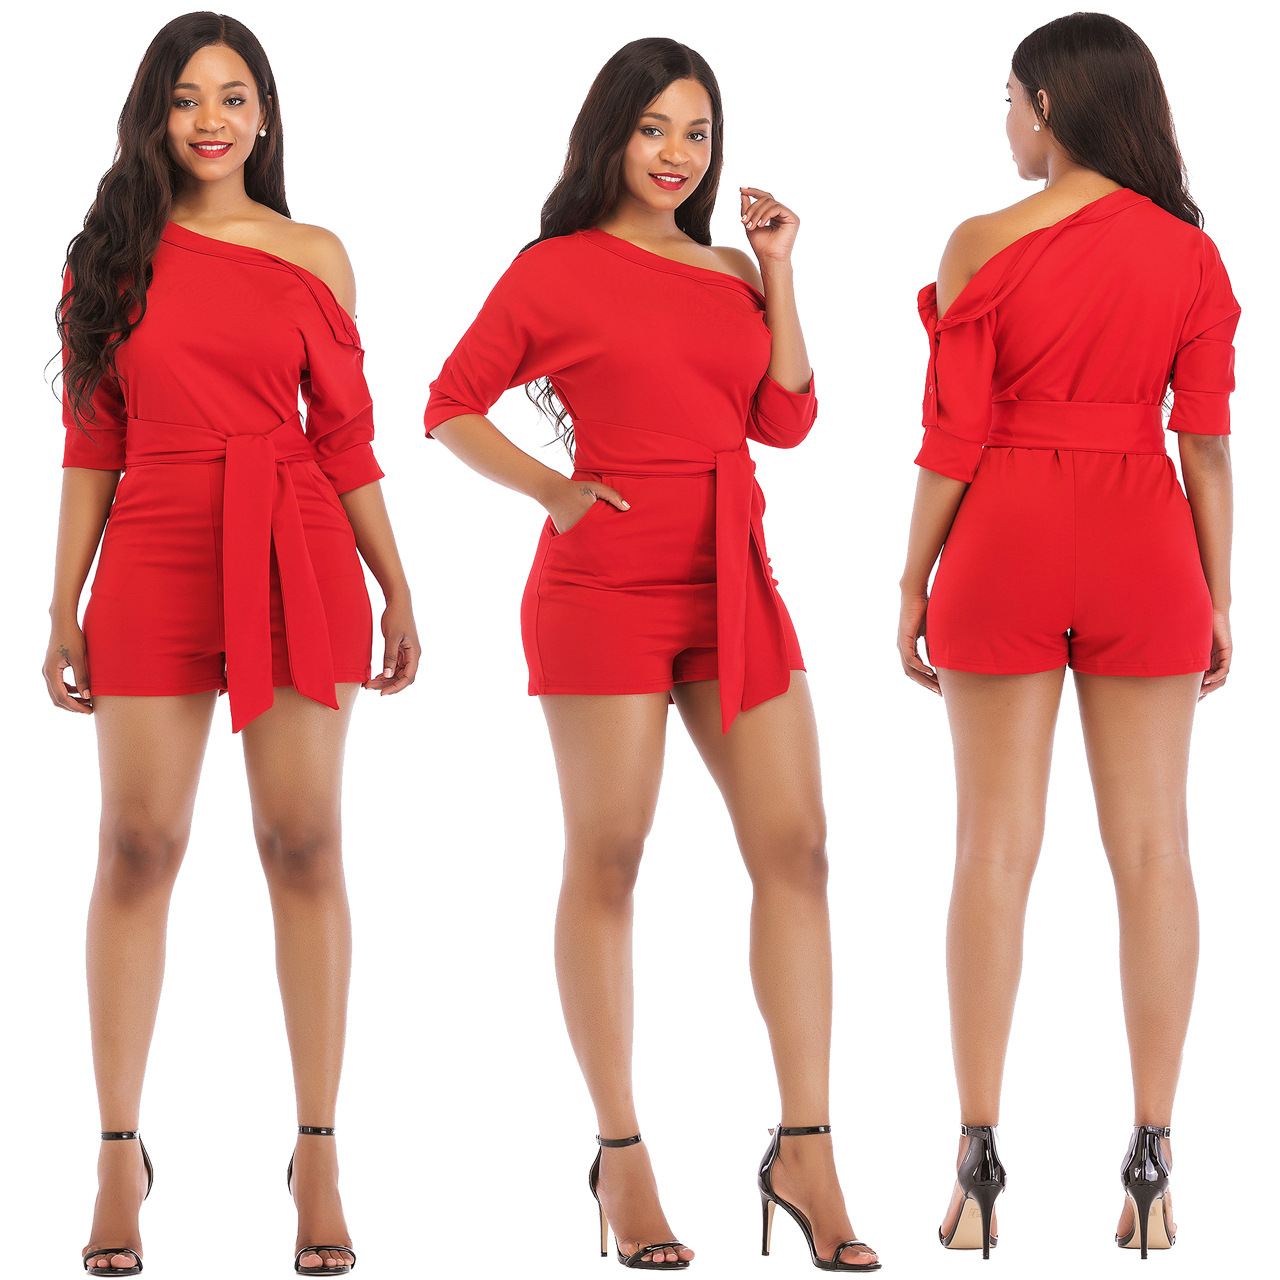 Jumpsuit Playsuit One Shoulder Shorts Irregular With Waistbelt Casual Fashion Half Sleeves Red Black Blue Yellow White Plus Size